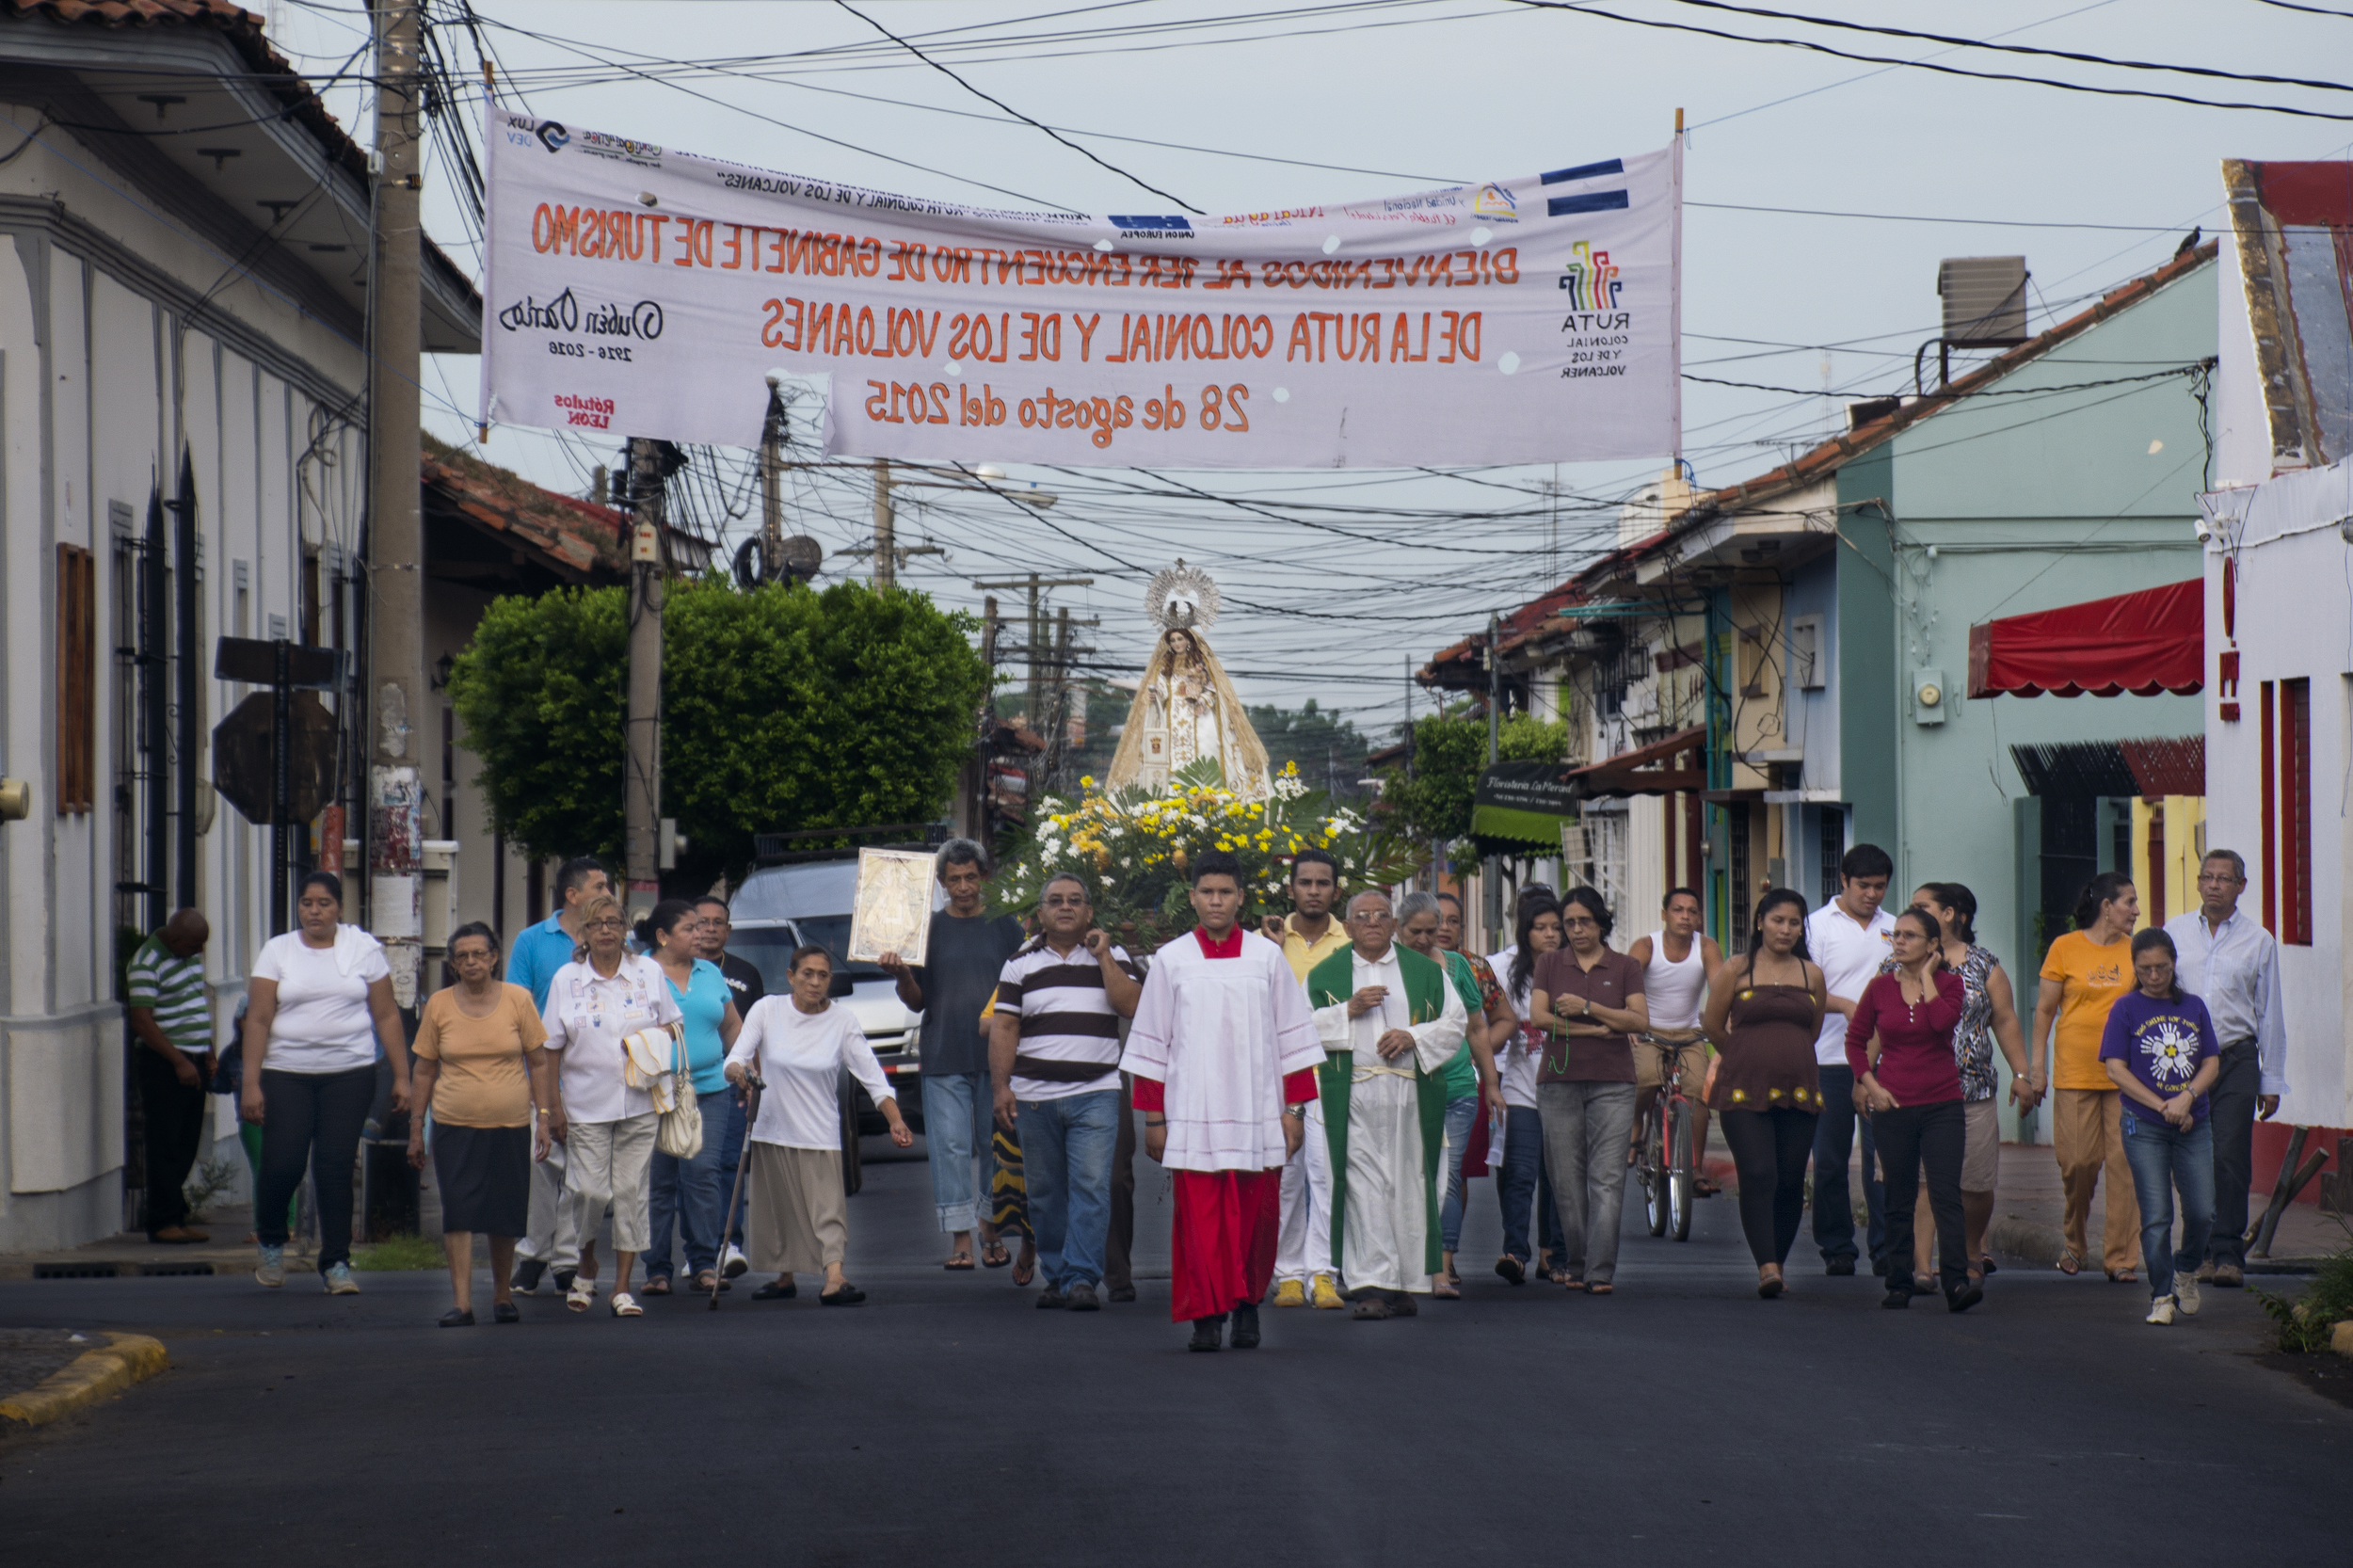 6:00 a.m. procession through the empty streets in honor of the Virgin Mary. (León, Nicaragua; Sep 2015)